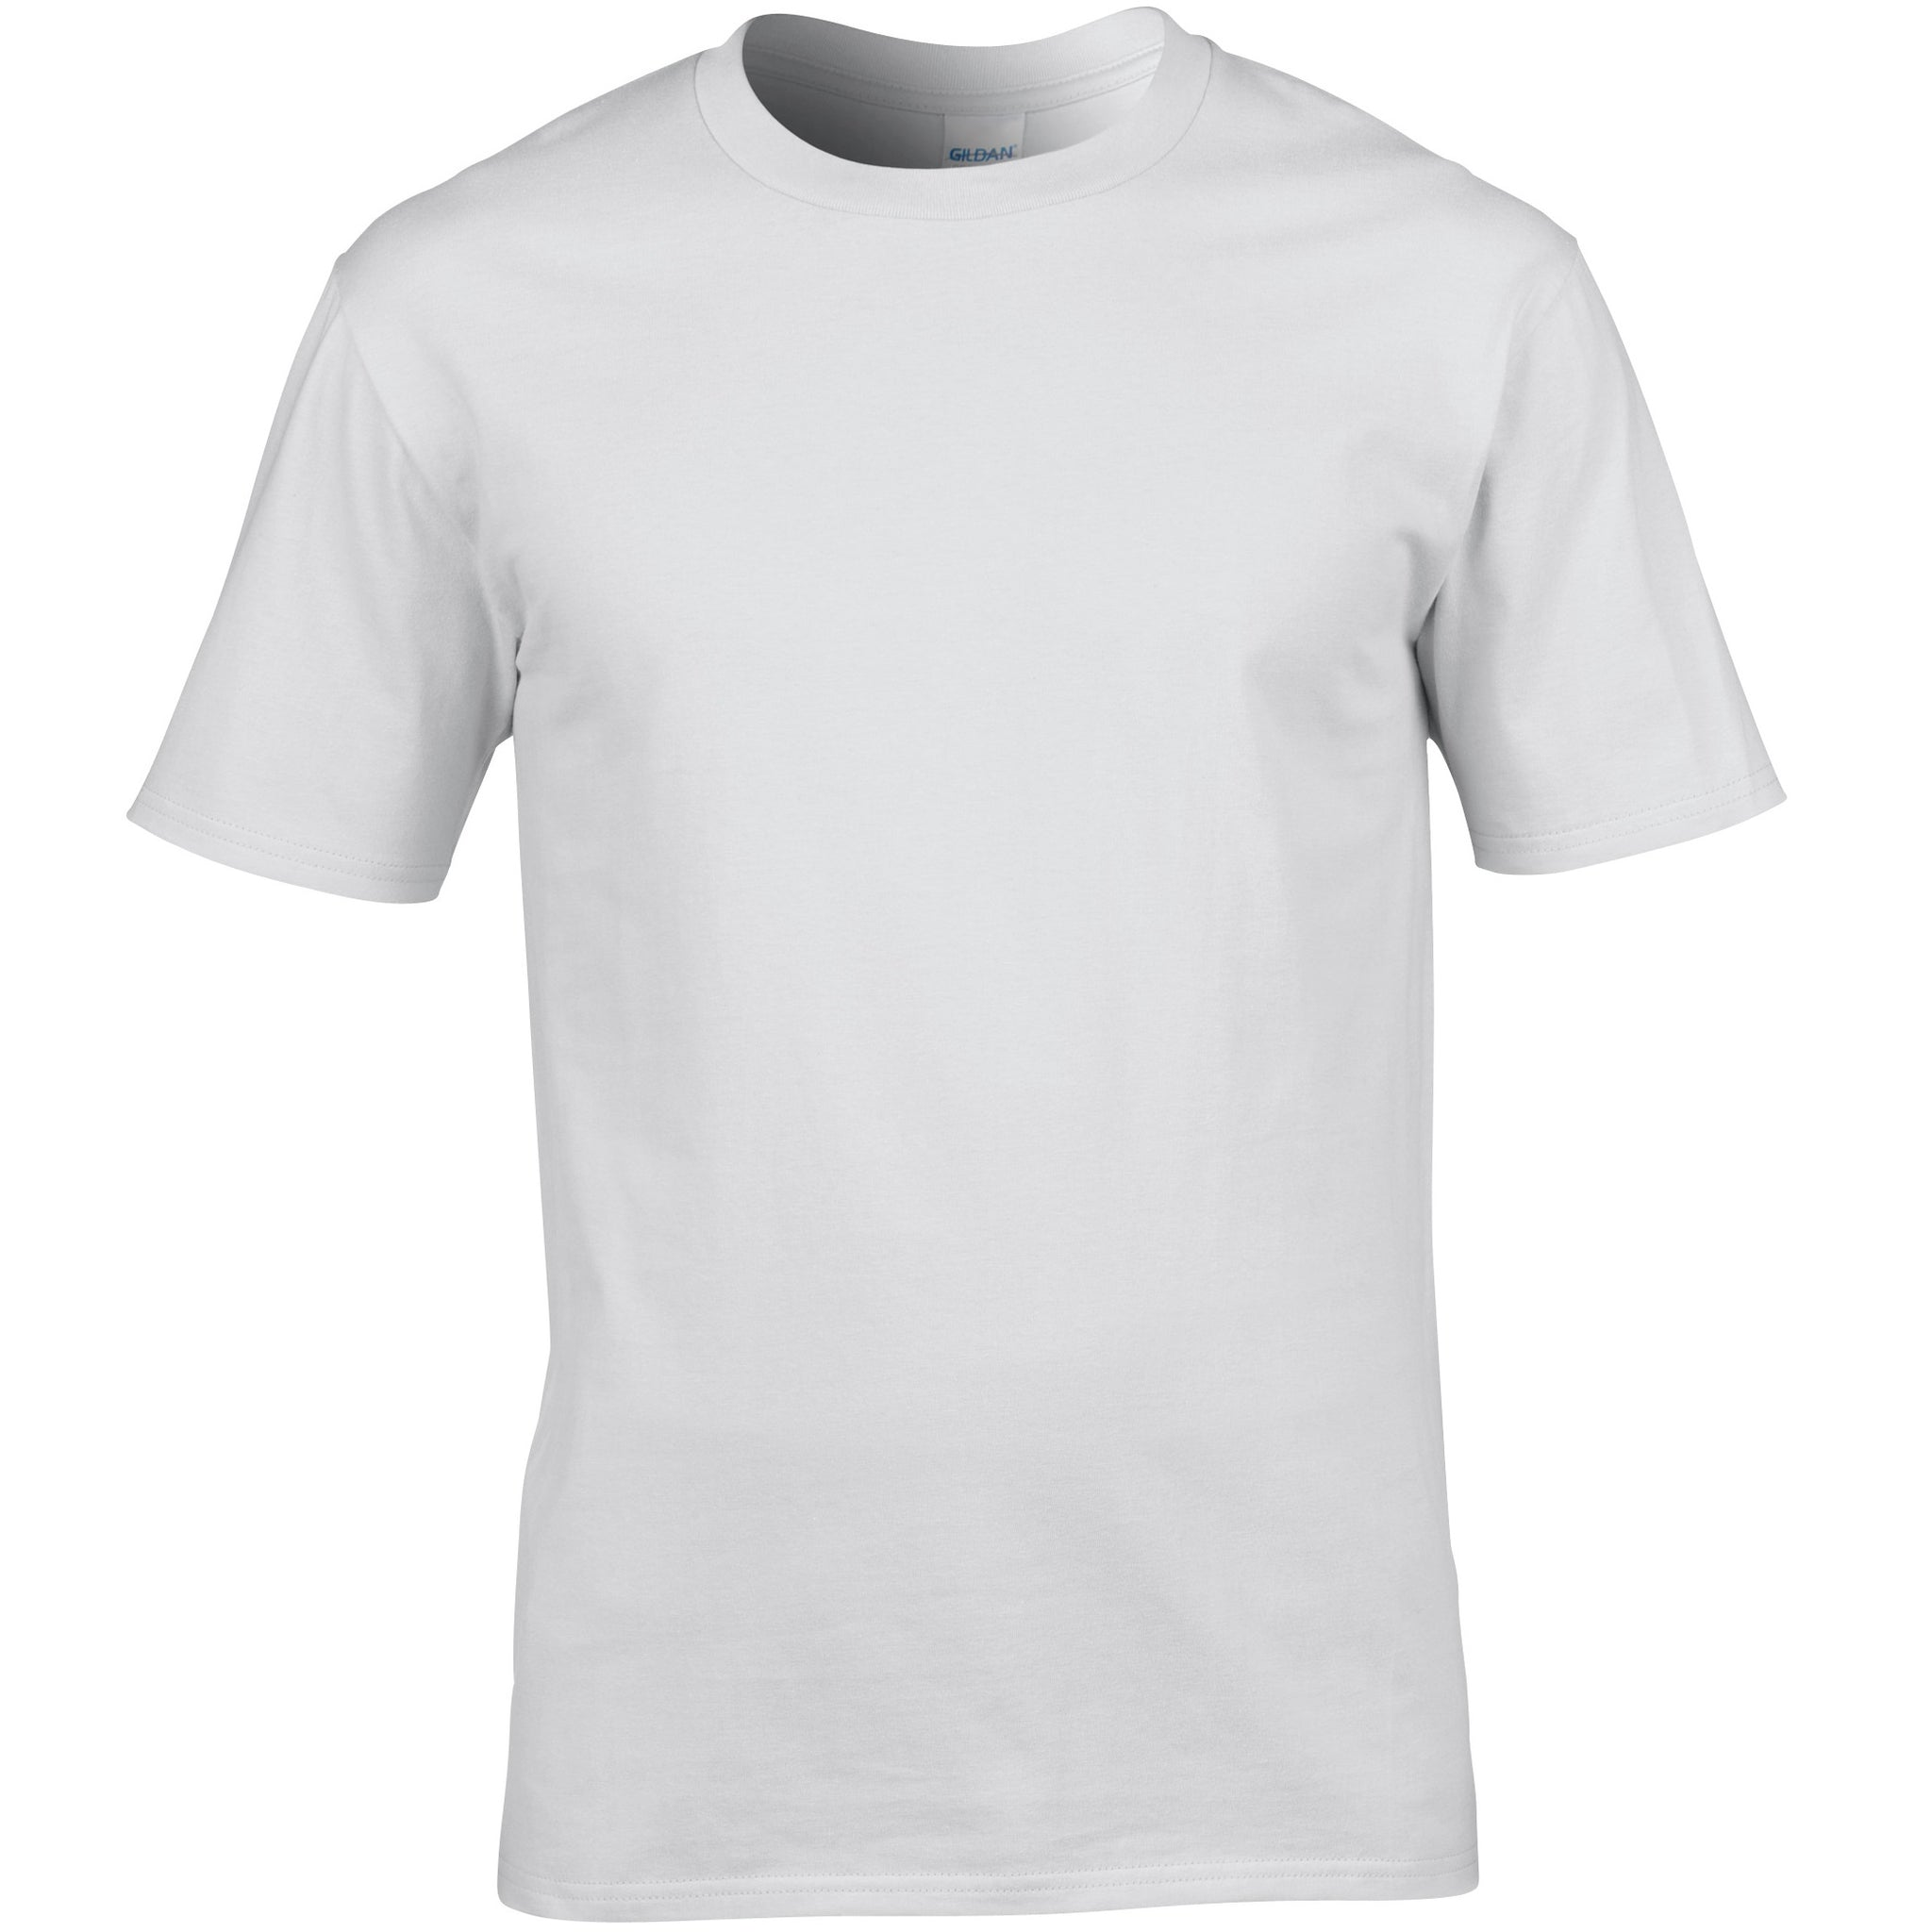 White Cotton T Shirt - choose logo